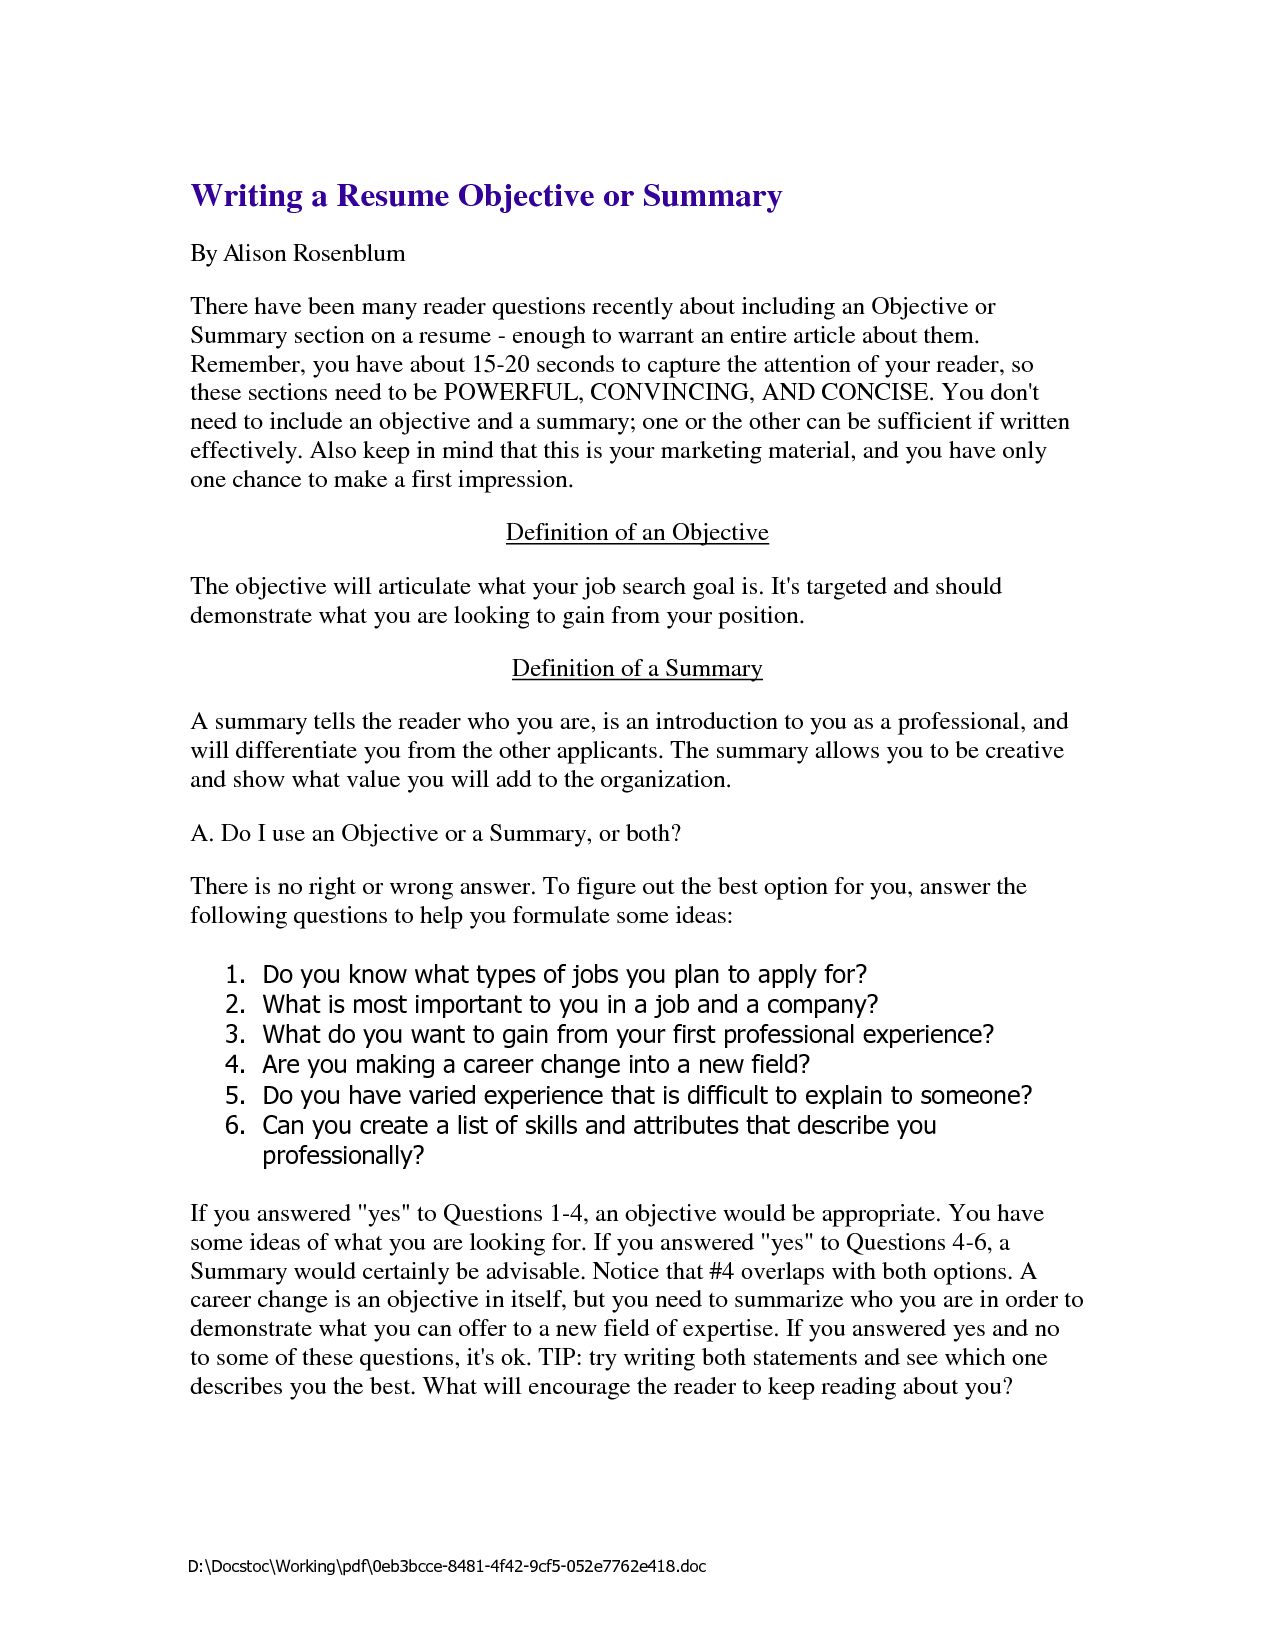 resume summary for writing a resume objective or summary summary for resume customer service by alison rosenblum